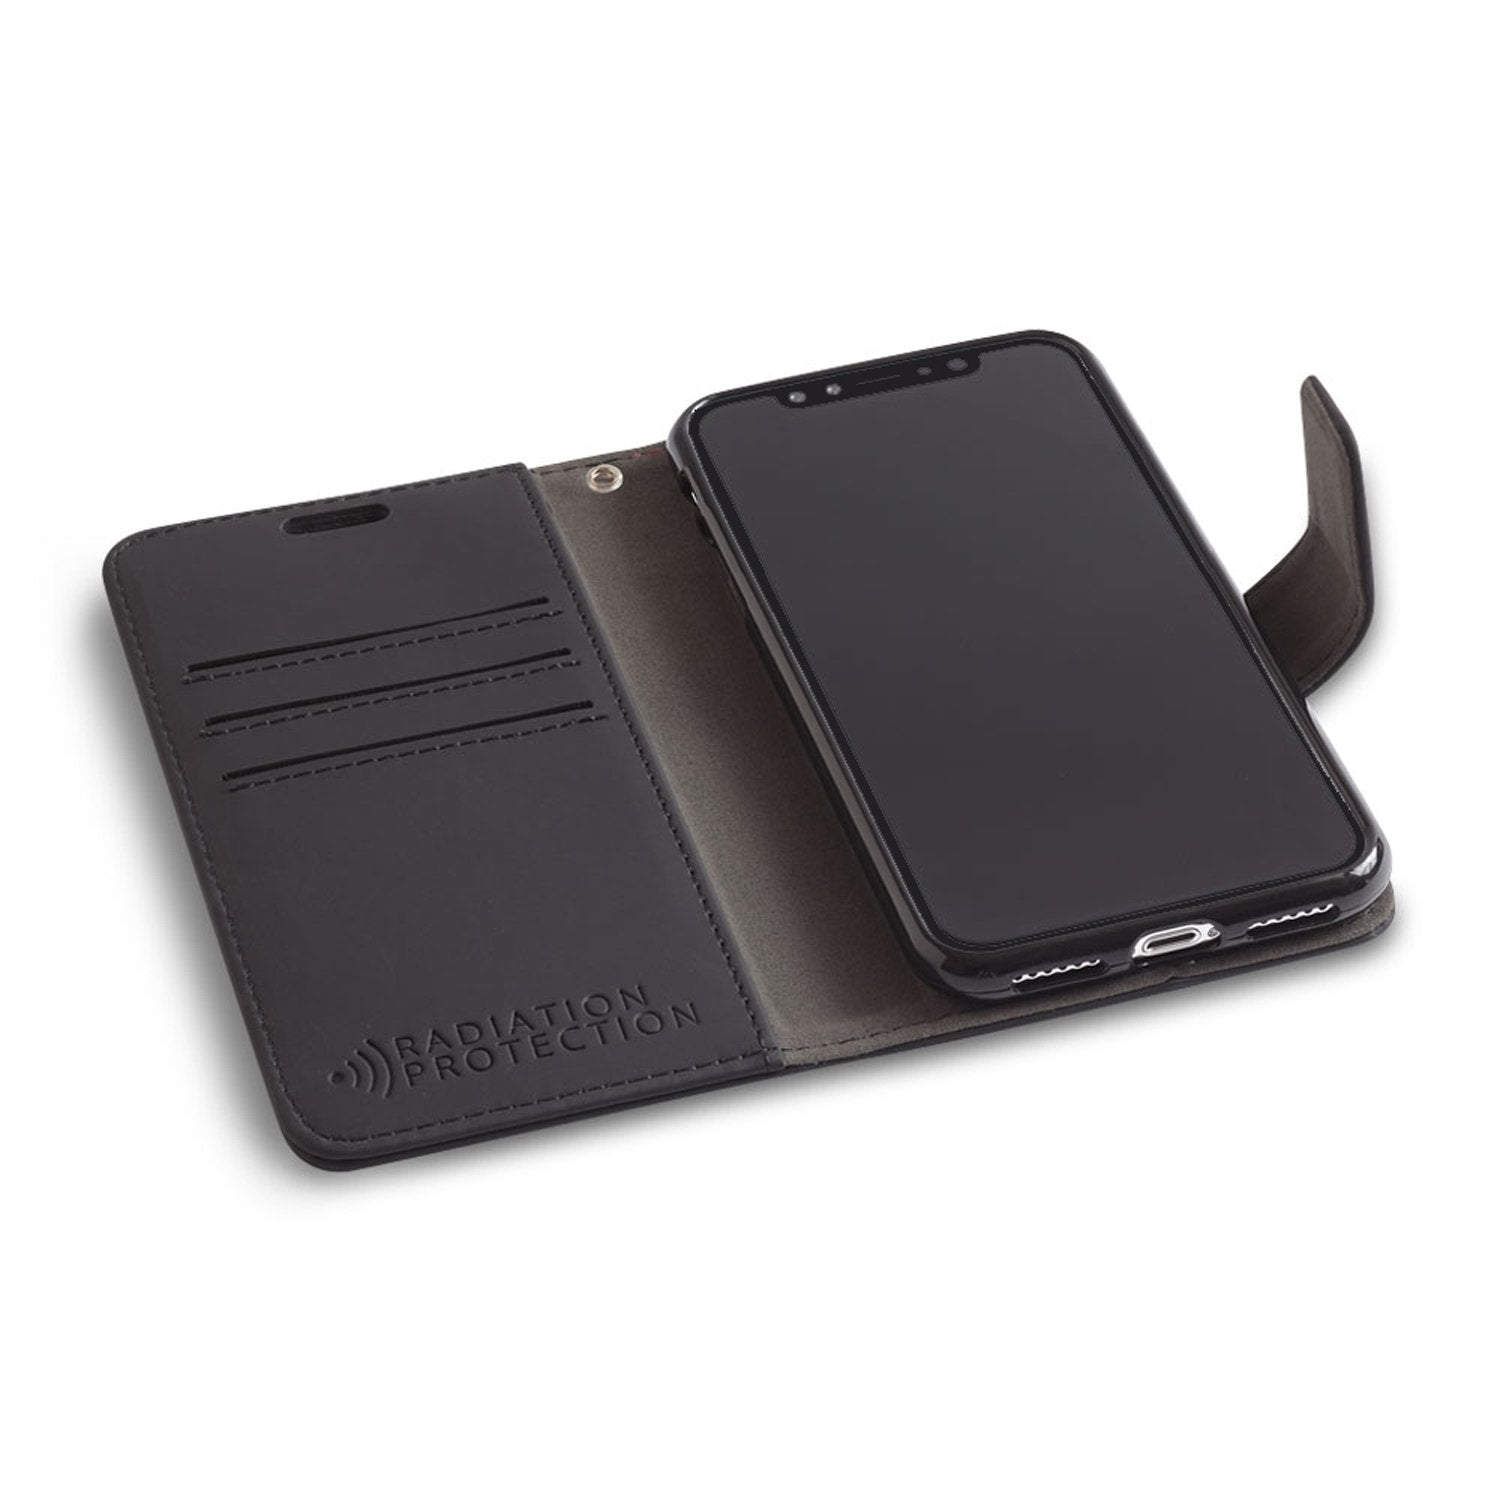 brand new ca04c 84656 Anti Radiation Phone Case | Iphone X/XS | Protective Shield Wallet ...